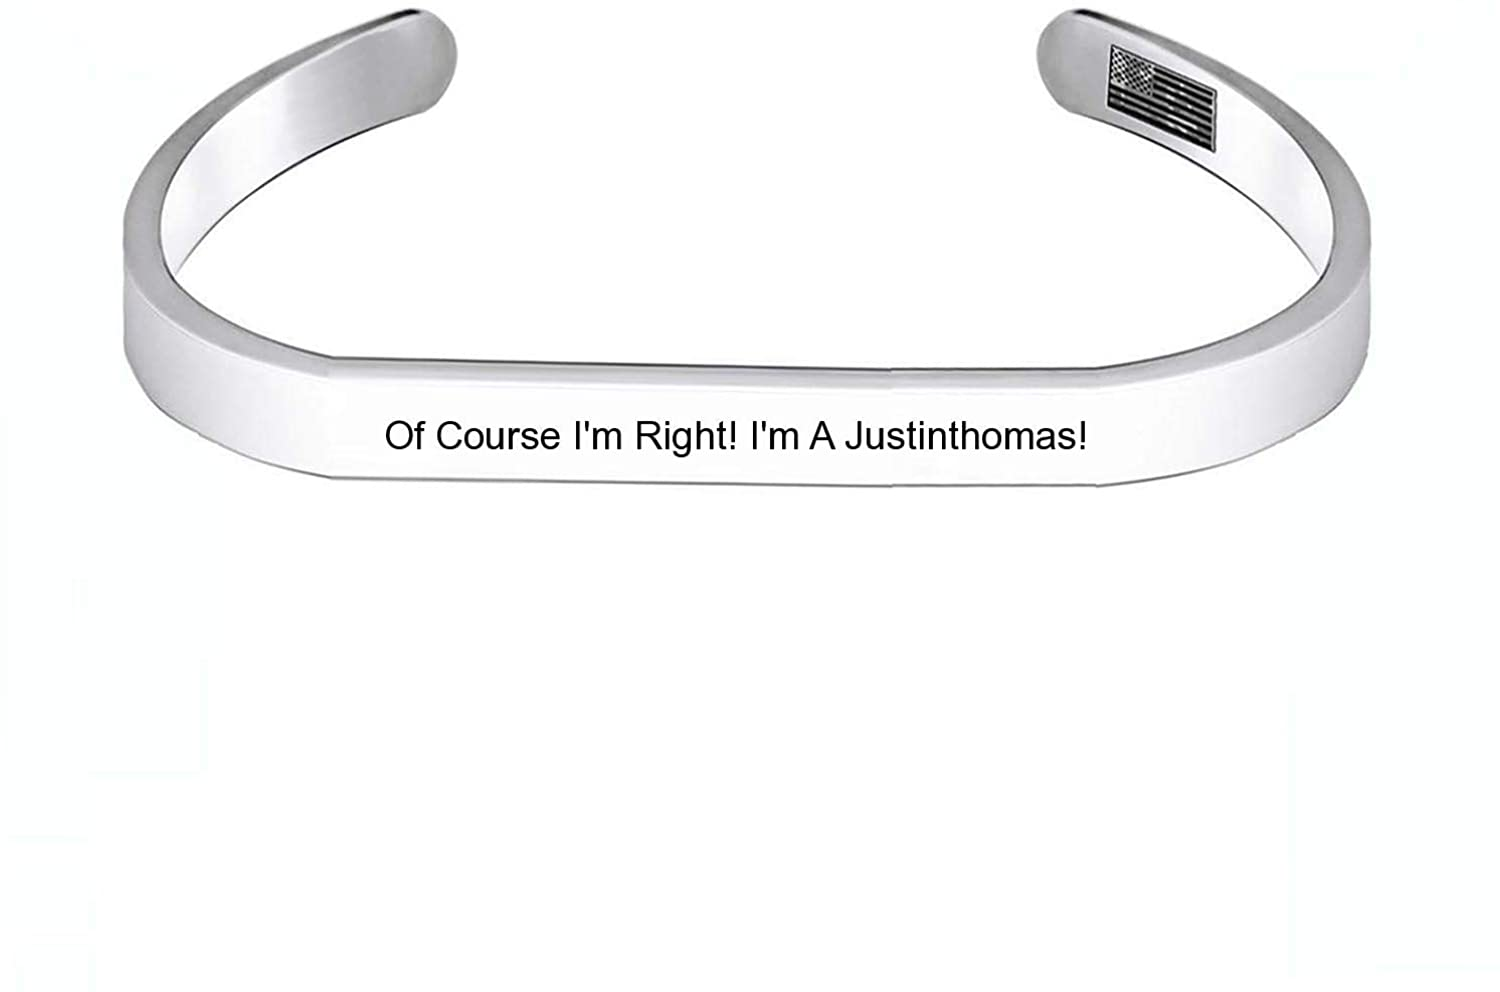 Enhome Cuff Bracelets of Course I'm Right! I'm A Justinthomas! for Women Birthday Gifts for Her Silver Cuff Bangle American Flag Bracelet